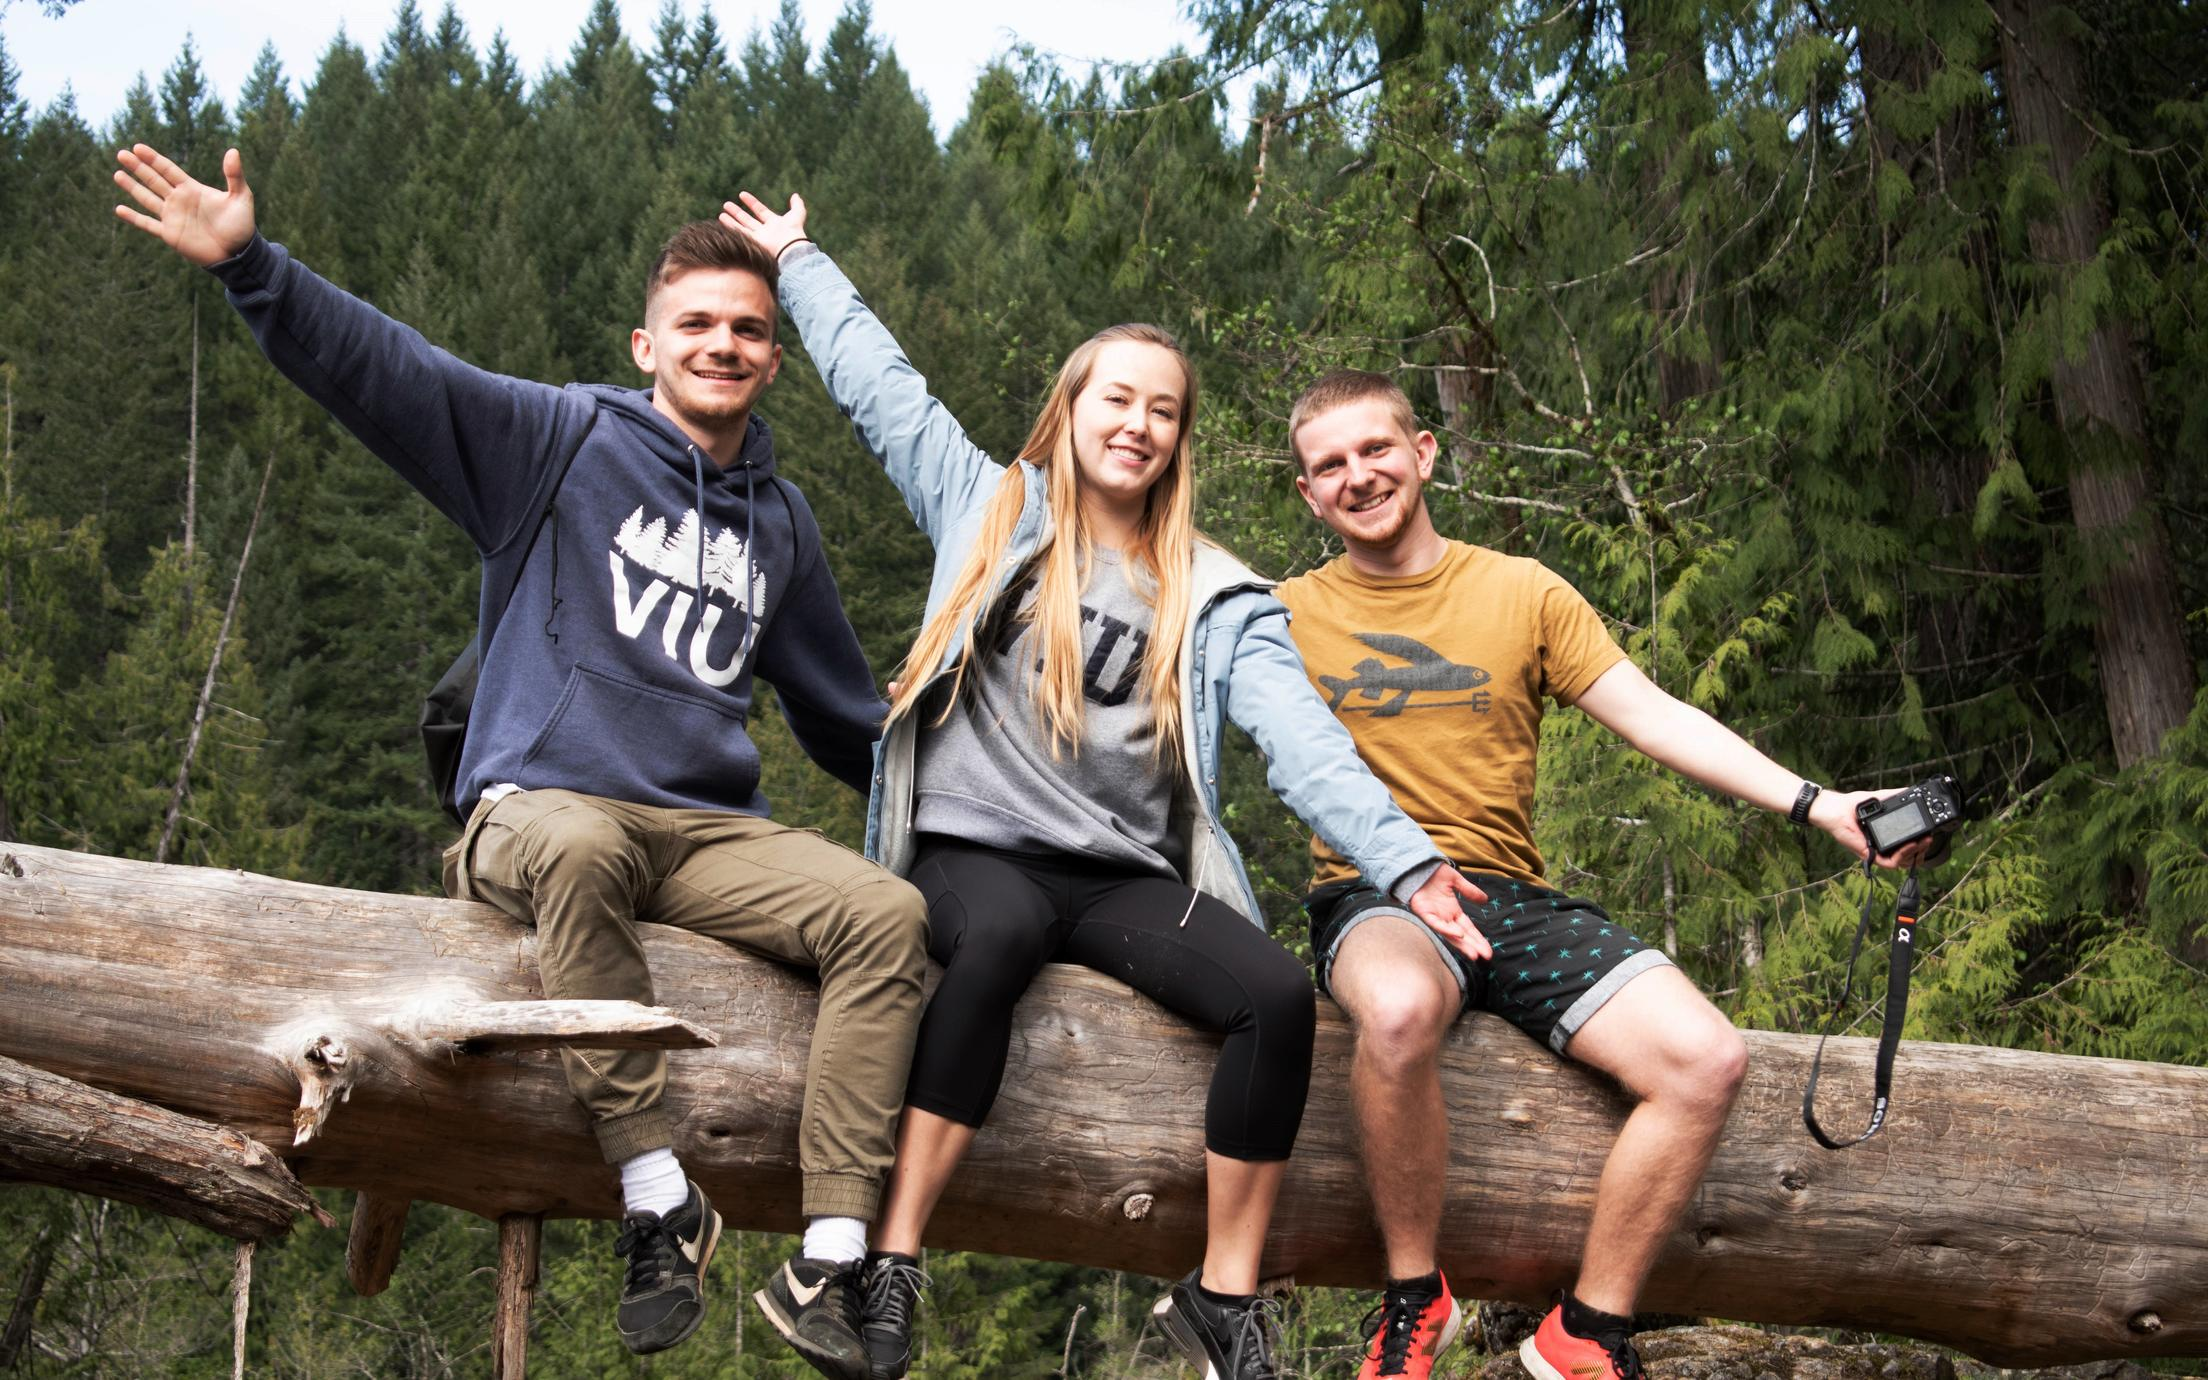 VIU - Cultural Connections - Local Hikes